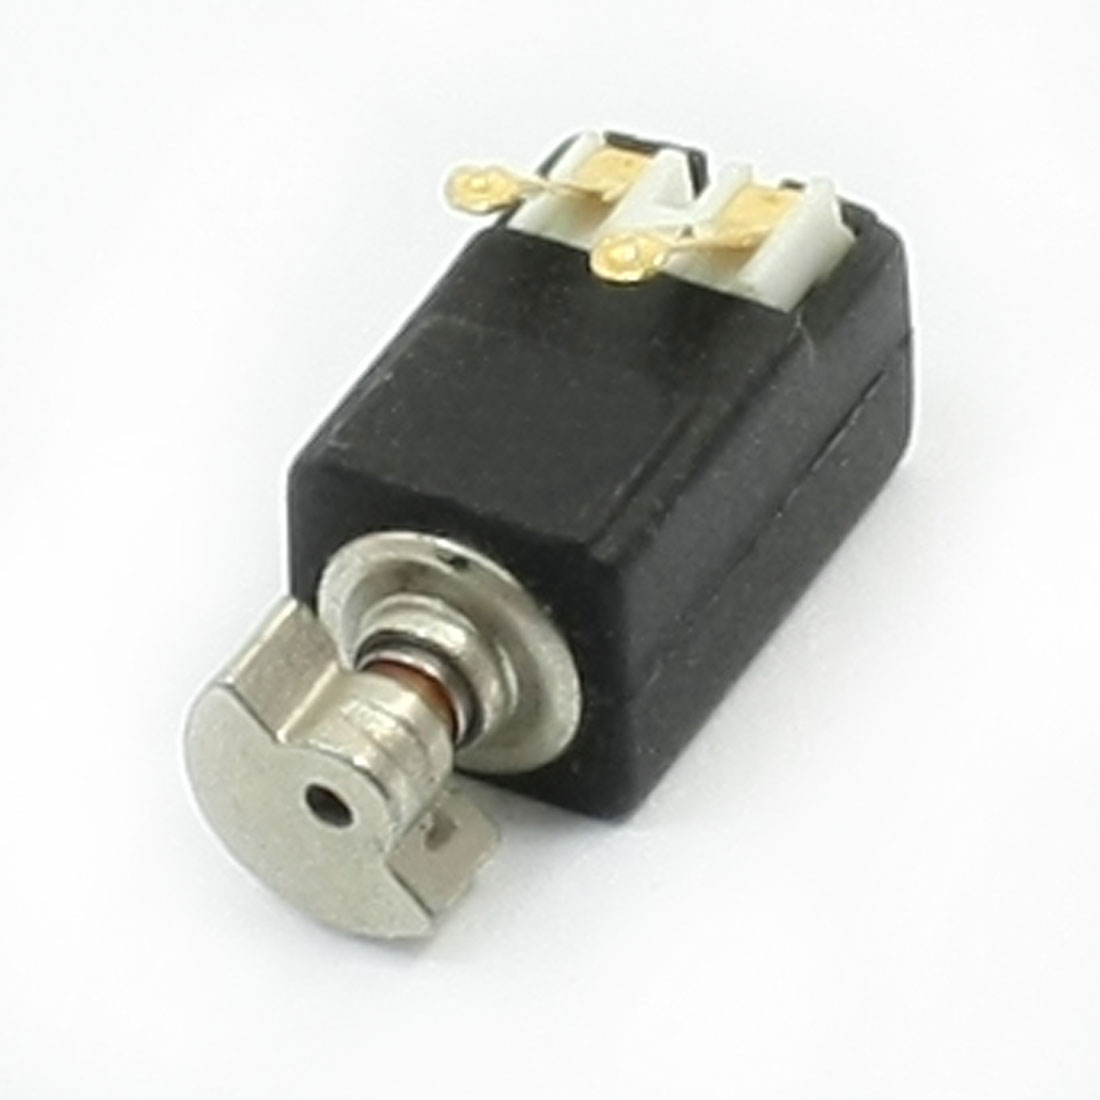 DC 3V 130mA 13000RPM Mini Vibration Motor Vibration for Cell Phone